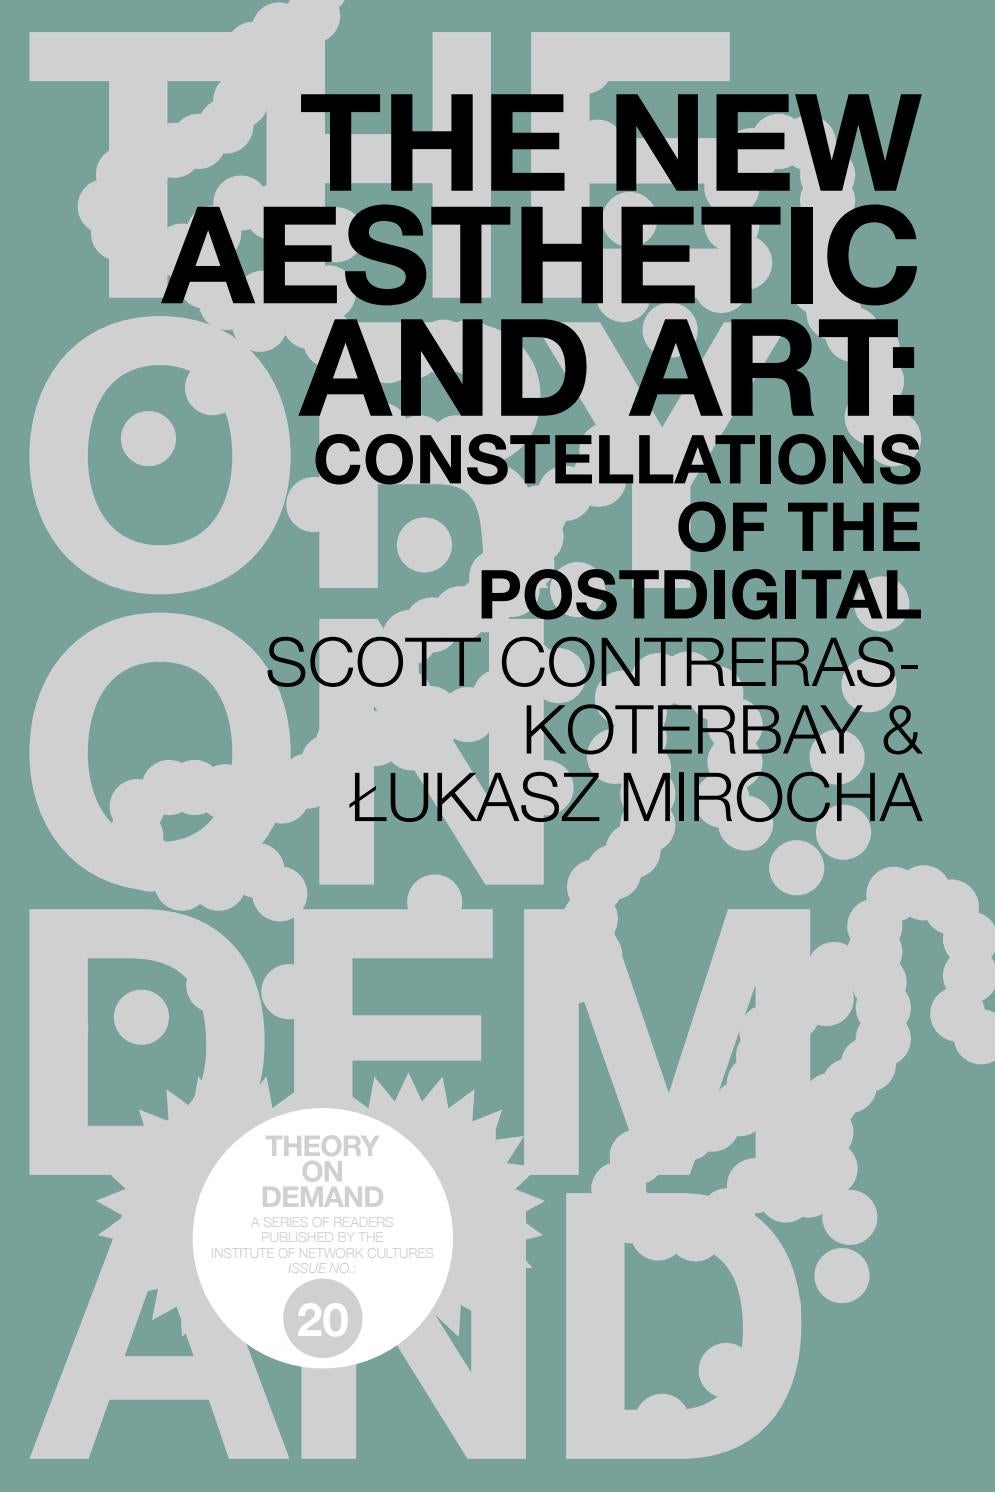 The New Aesthetic And Art Constellations Of Postdigital By Step Hacking A Disposable Camera Flash Unit To Power Geiger Institute Network Cultures Issuu